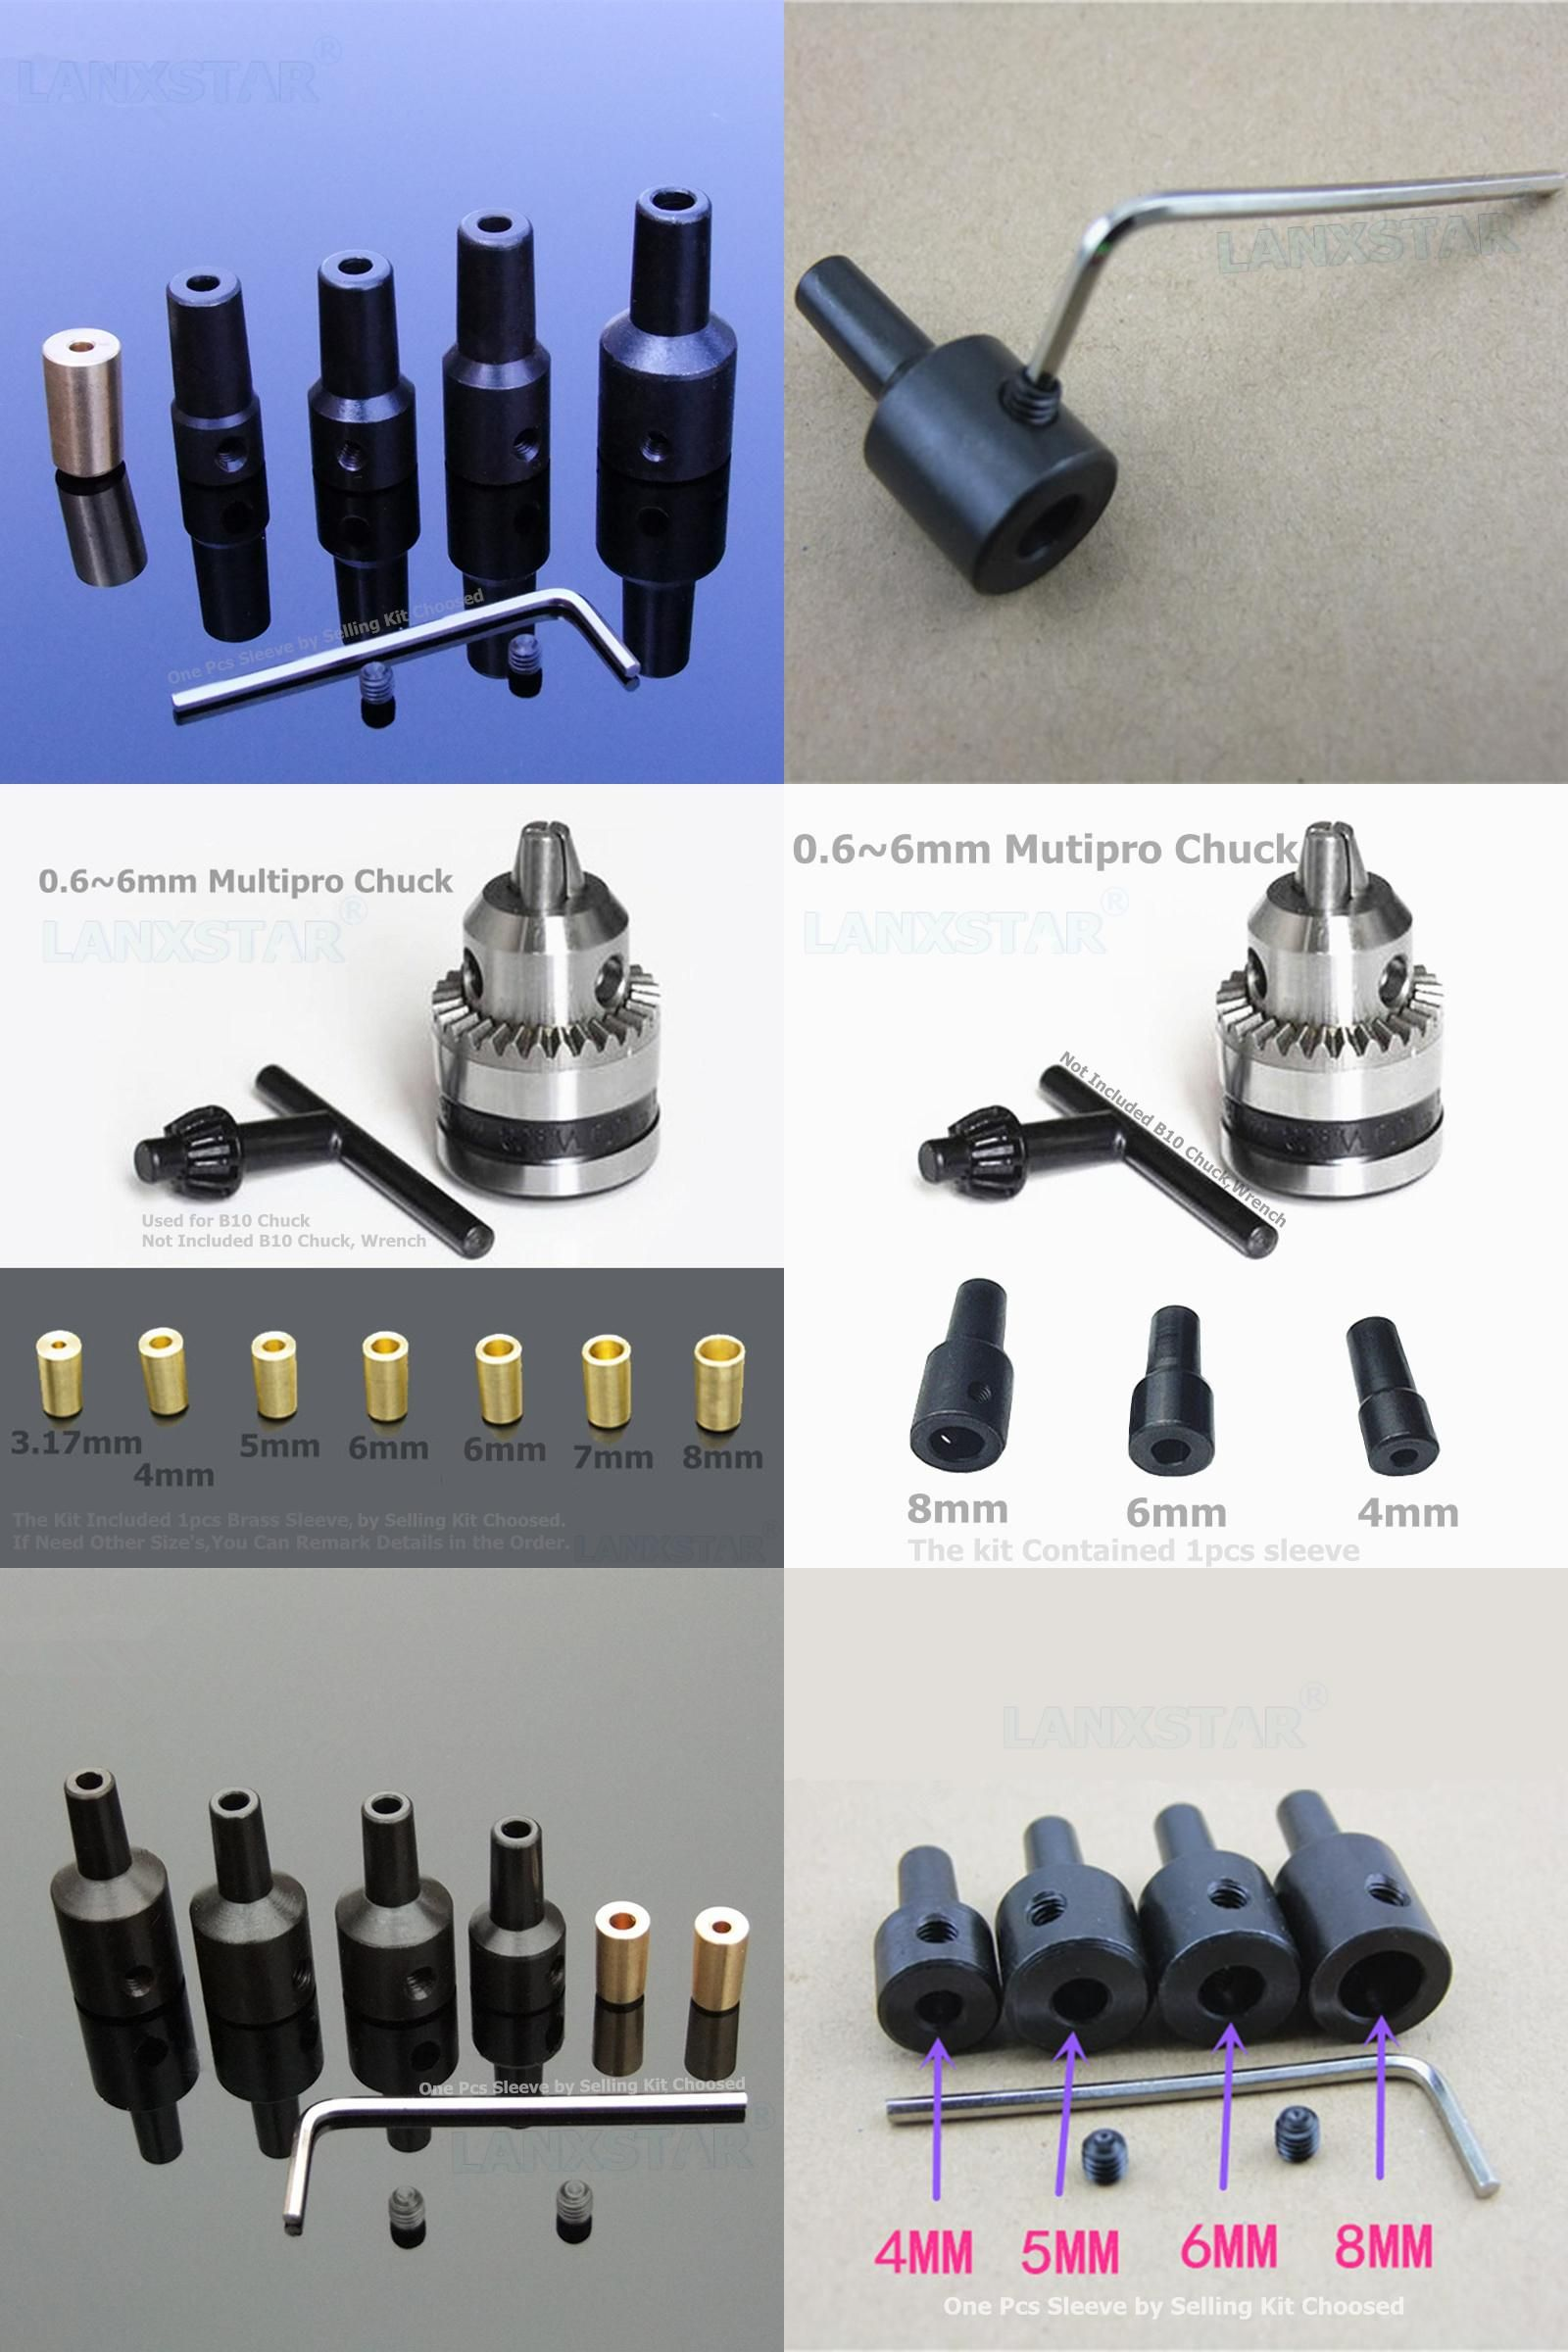 Visit To Buy B10 Drill Chuck Connecting Rod Drills Clamp Sleeve High Precision Connected Carbon Steel Sleeves Coupling 3 17 1 Drill Chucks Carbon Steel Drill